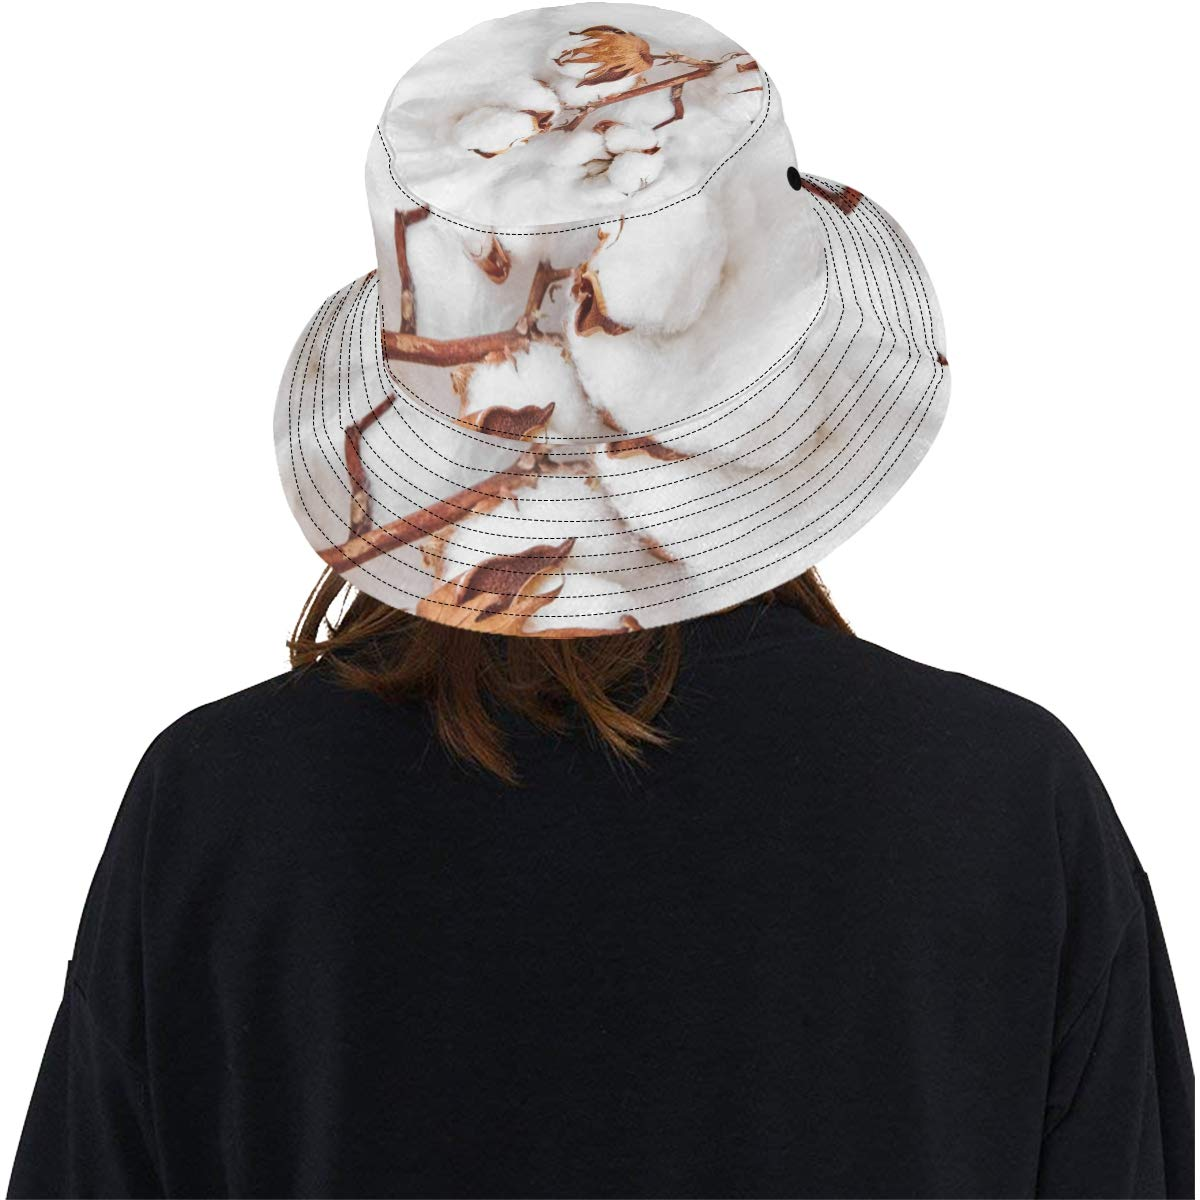 White and Clean Cotton New Summer Unisex Cotton Fashion Fishing Sun Bucket Hats for Kid Teens Women and Men with Customize Top Packable Fisherman Cap for Outdoor Travel